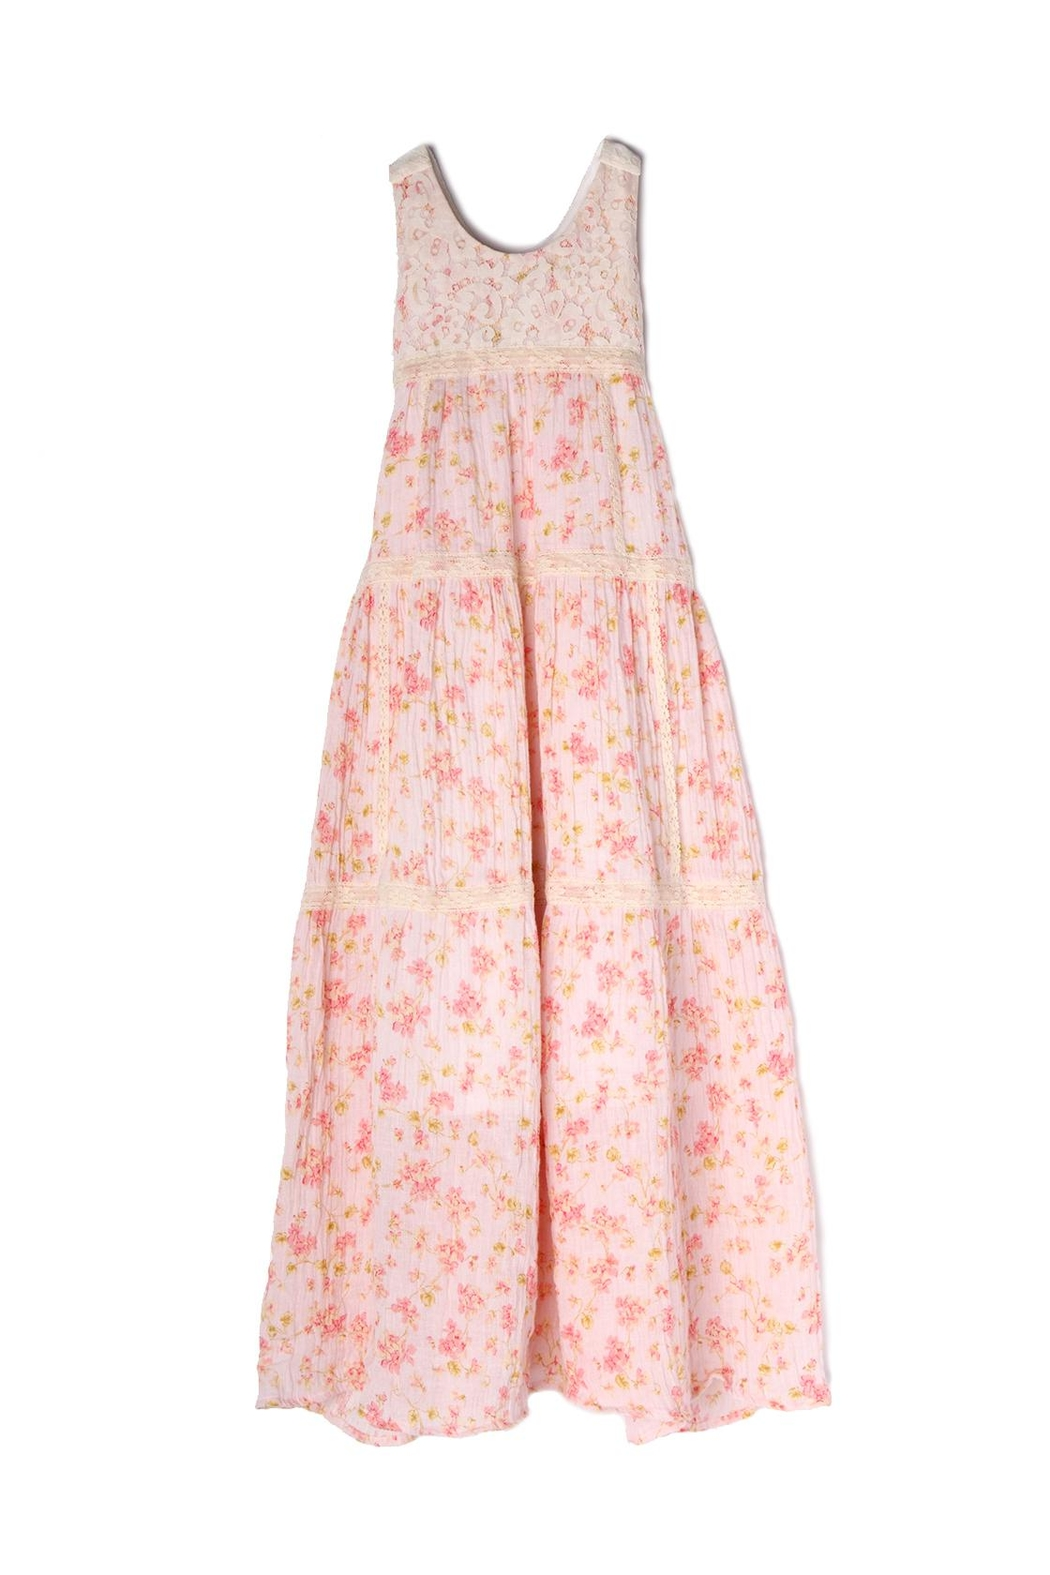 Isobella and Chloe Pretty-In-Pink Maxi Dress - Main Image